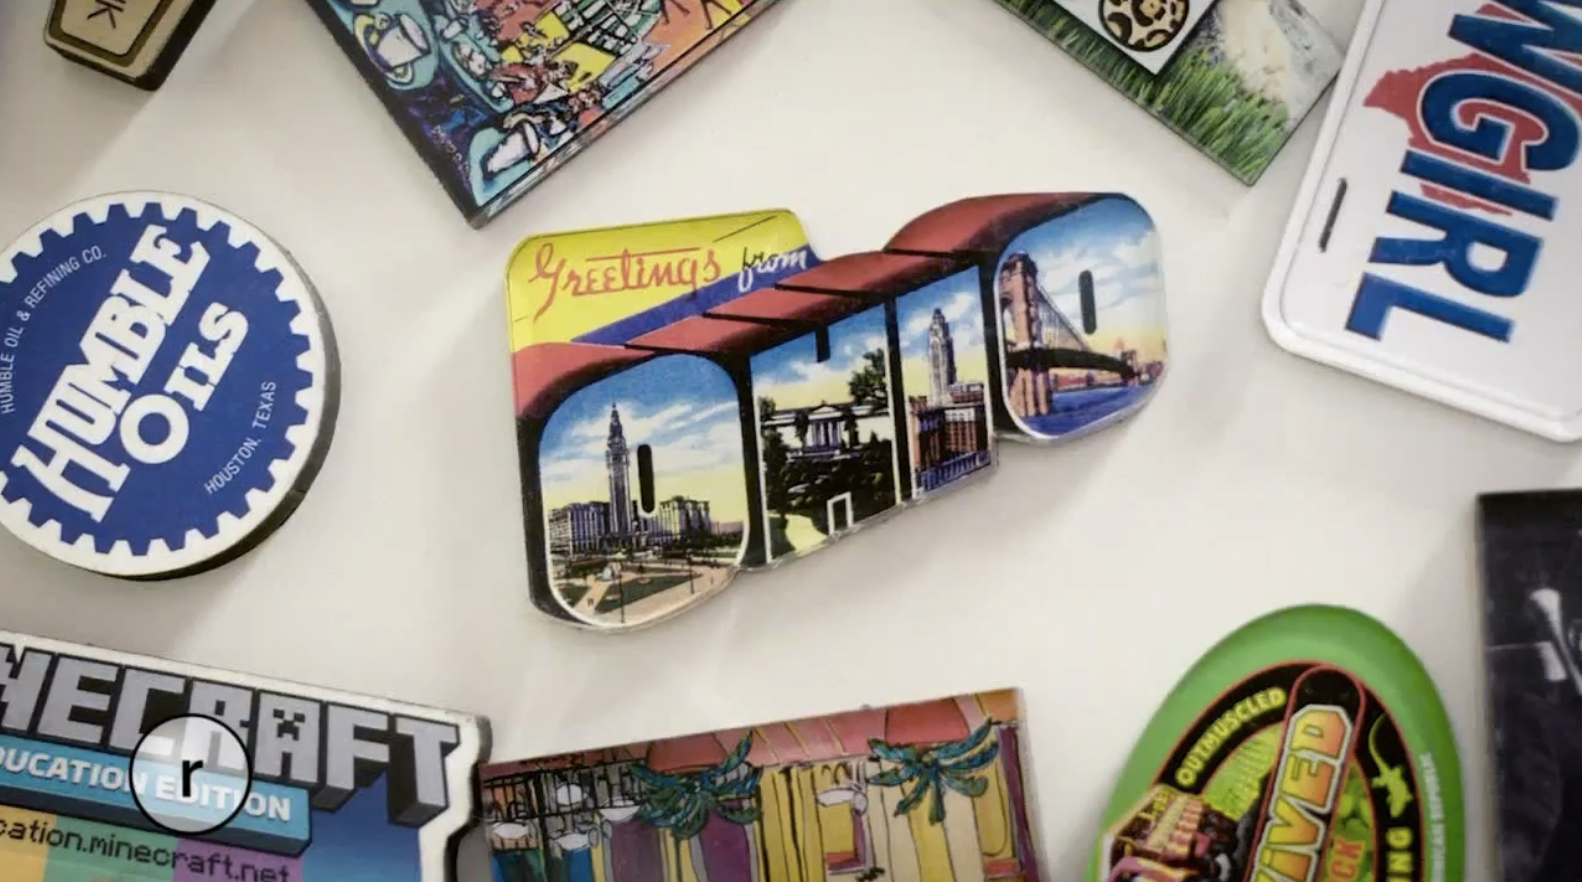 Morris Magnets has been making decorative magnets in the Seattle area for more than 20 years. (Image: Seattle Refined)